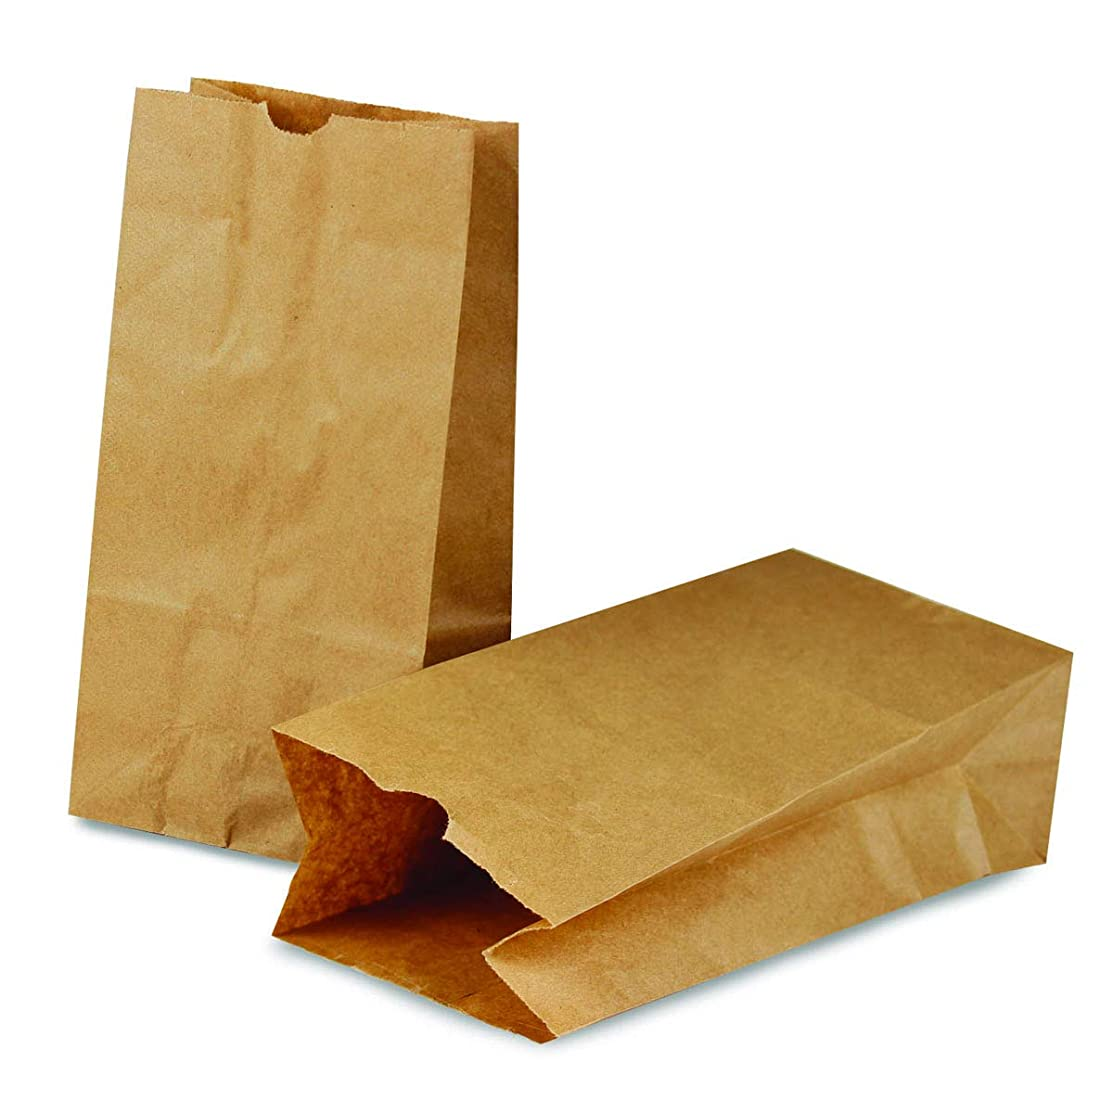 Hygloss Products Brown Paper Bags - Flat Bottom Kraft Lunch Bags - 4-1/4 x 2-1/4 x 8-3/16 Inch, 100 Pack